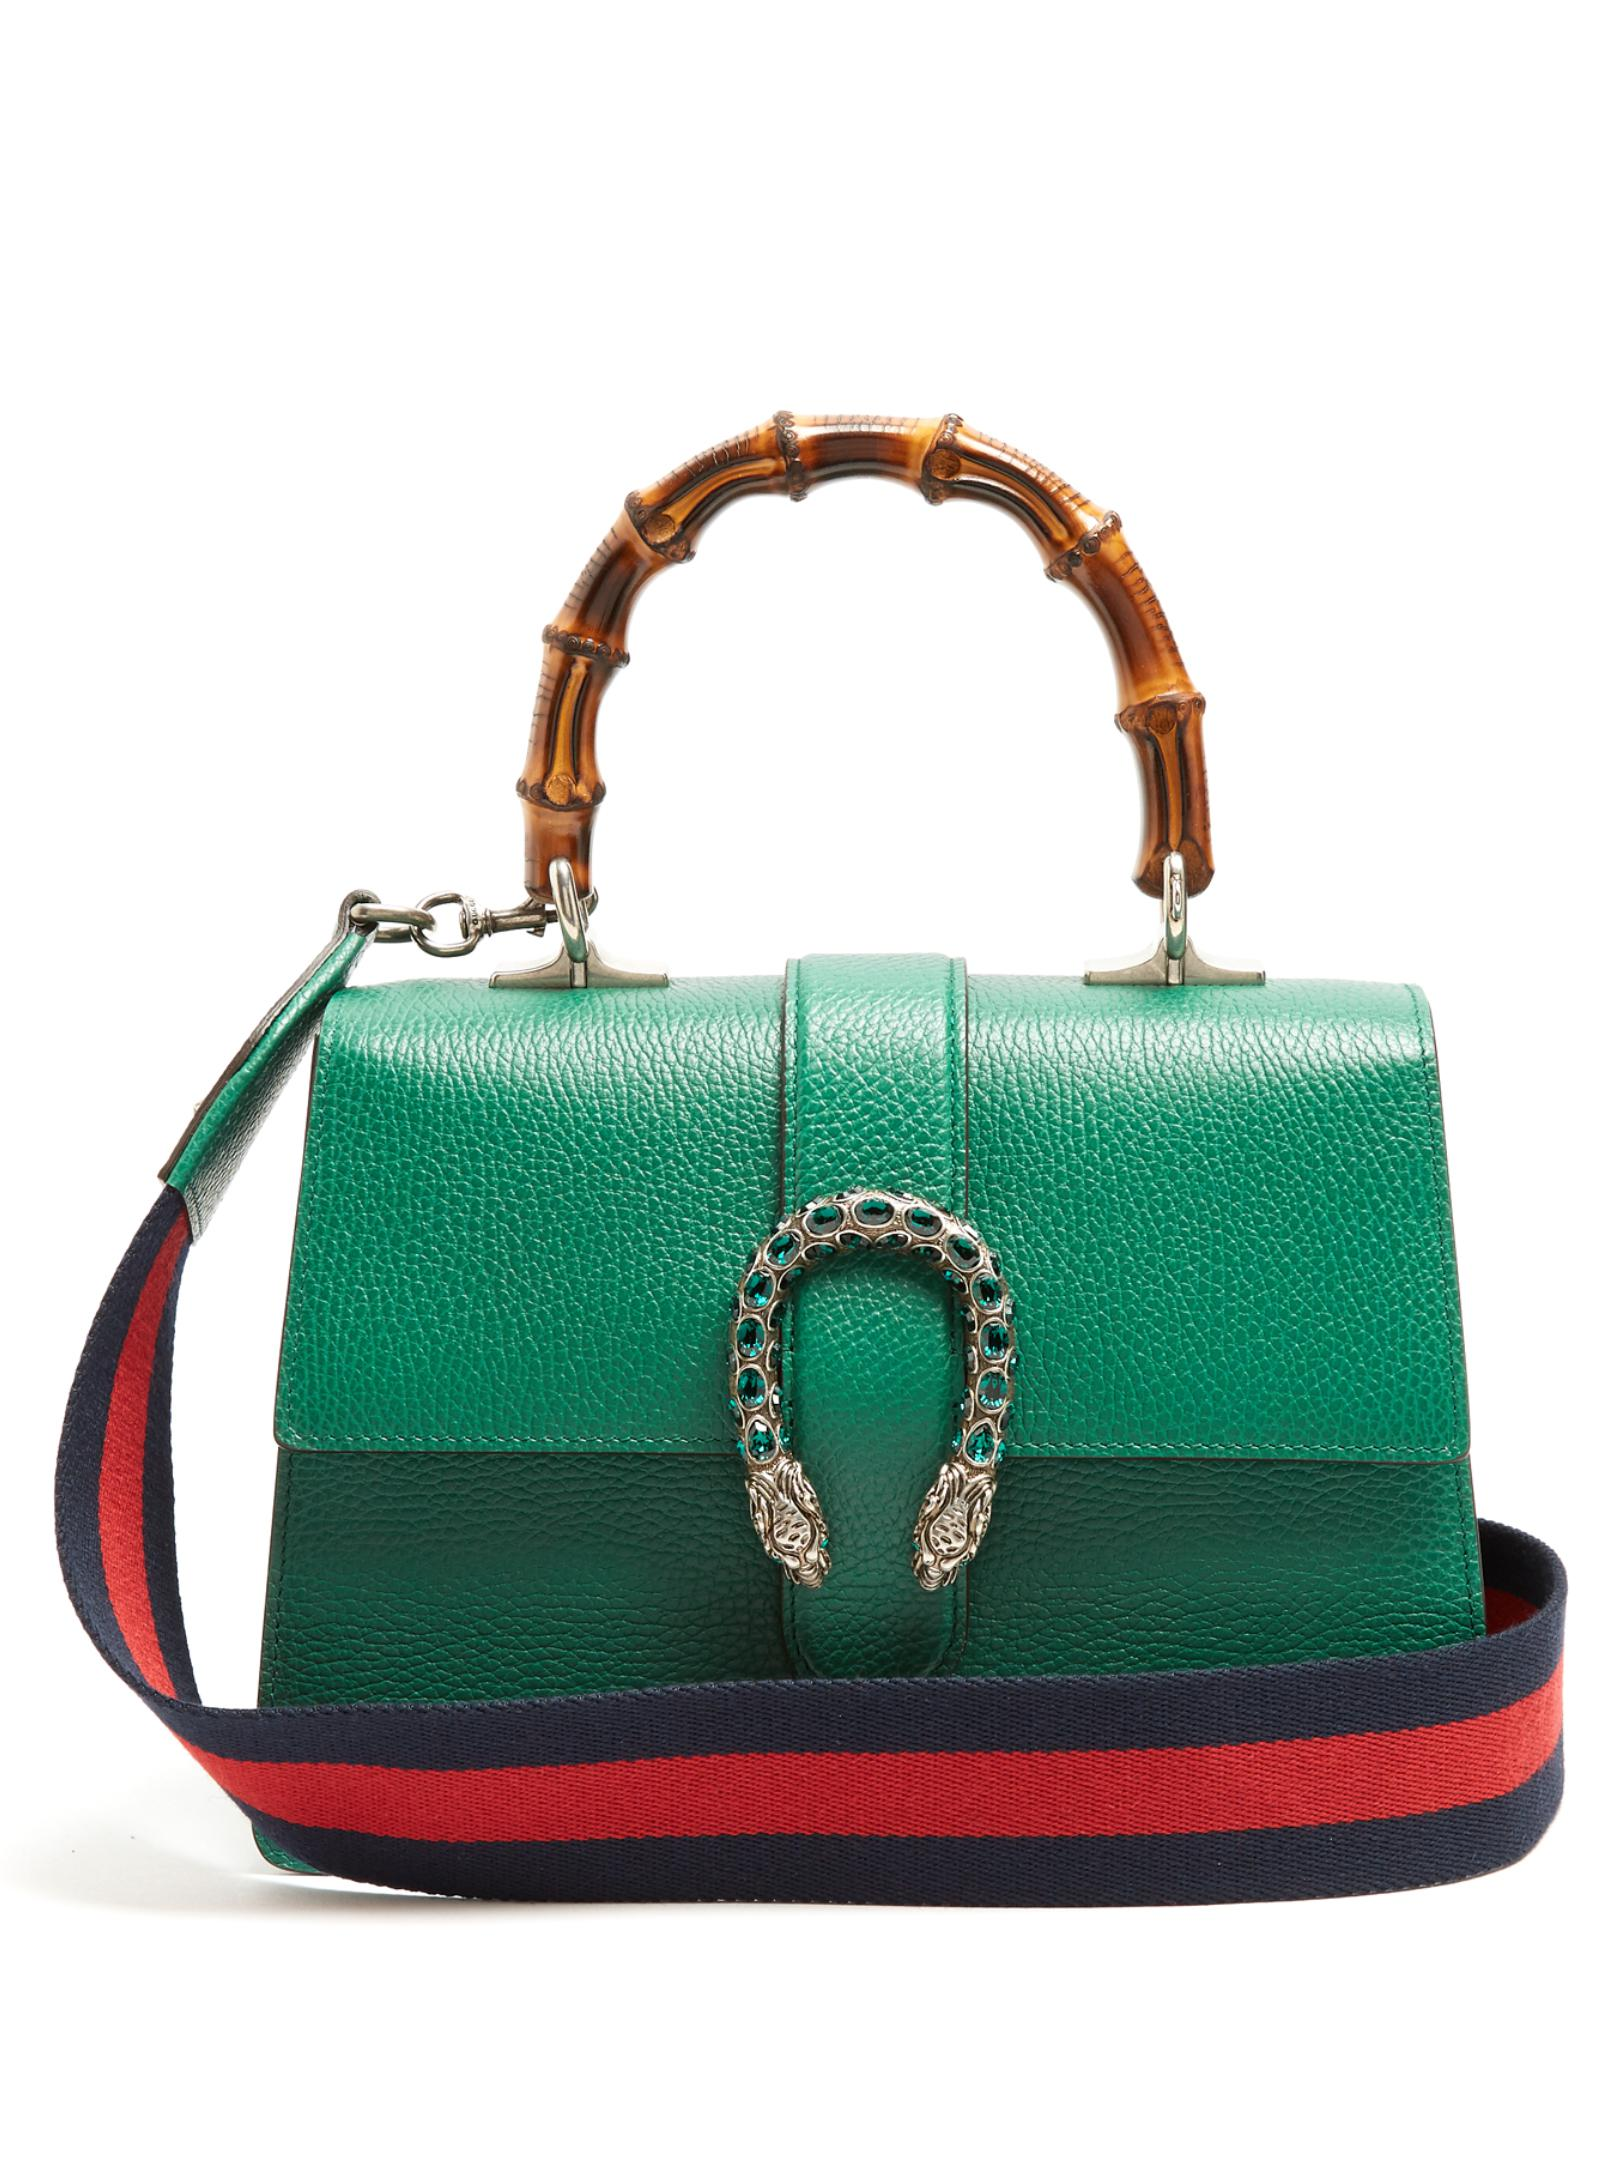 58407831ed9 Lyst - Gucci Dionysus Bamboo-handle Medium Leather Tote in Green